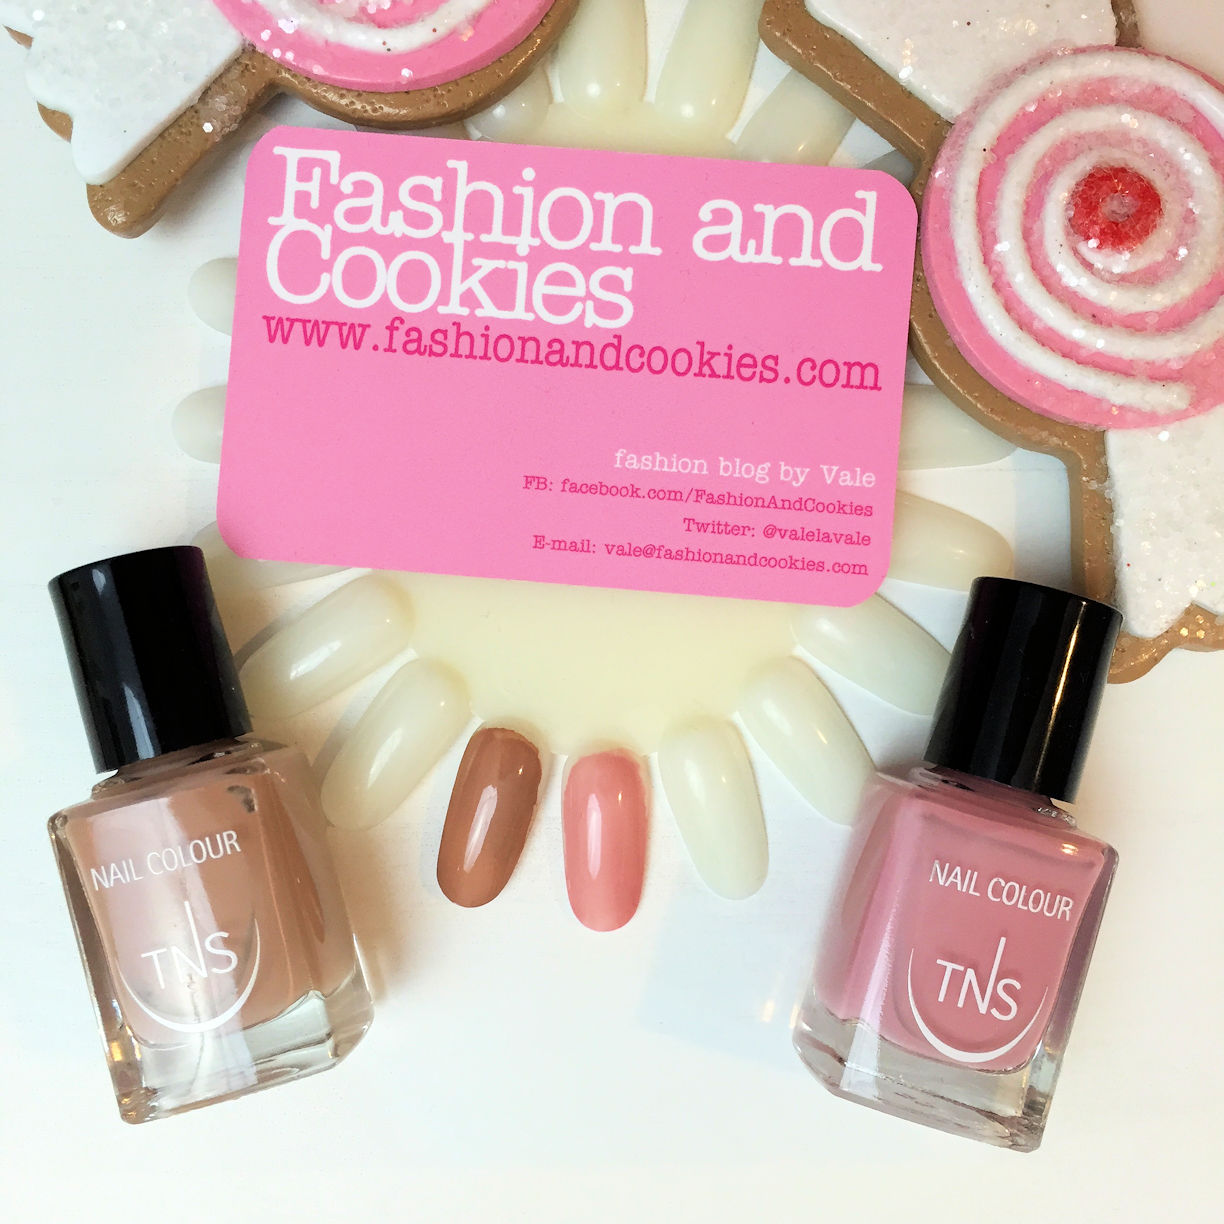 Nude Look skin shades nail polish collection by TNS Cosmetics swatches on Fashion and Cookies beauty blog, beauty blogger review